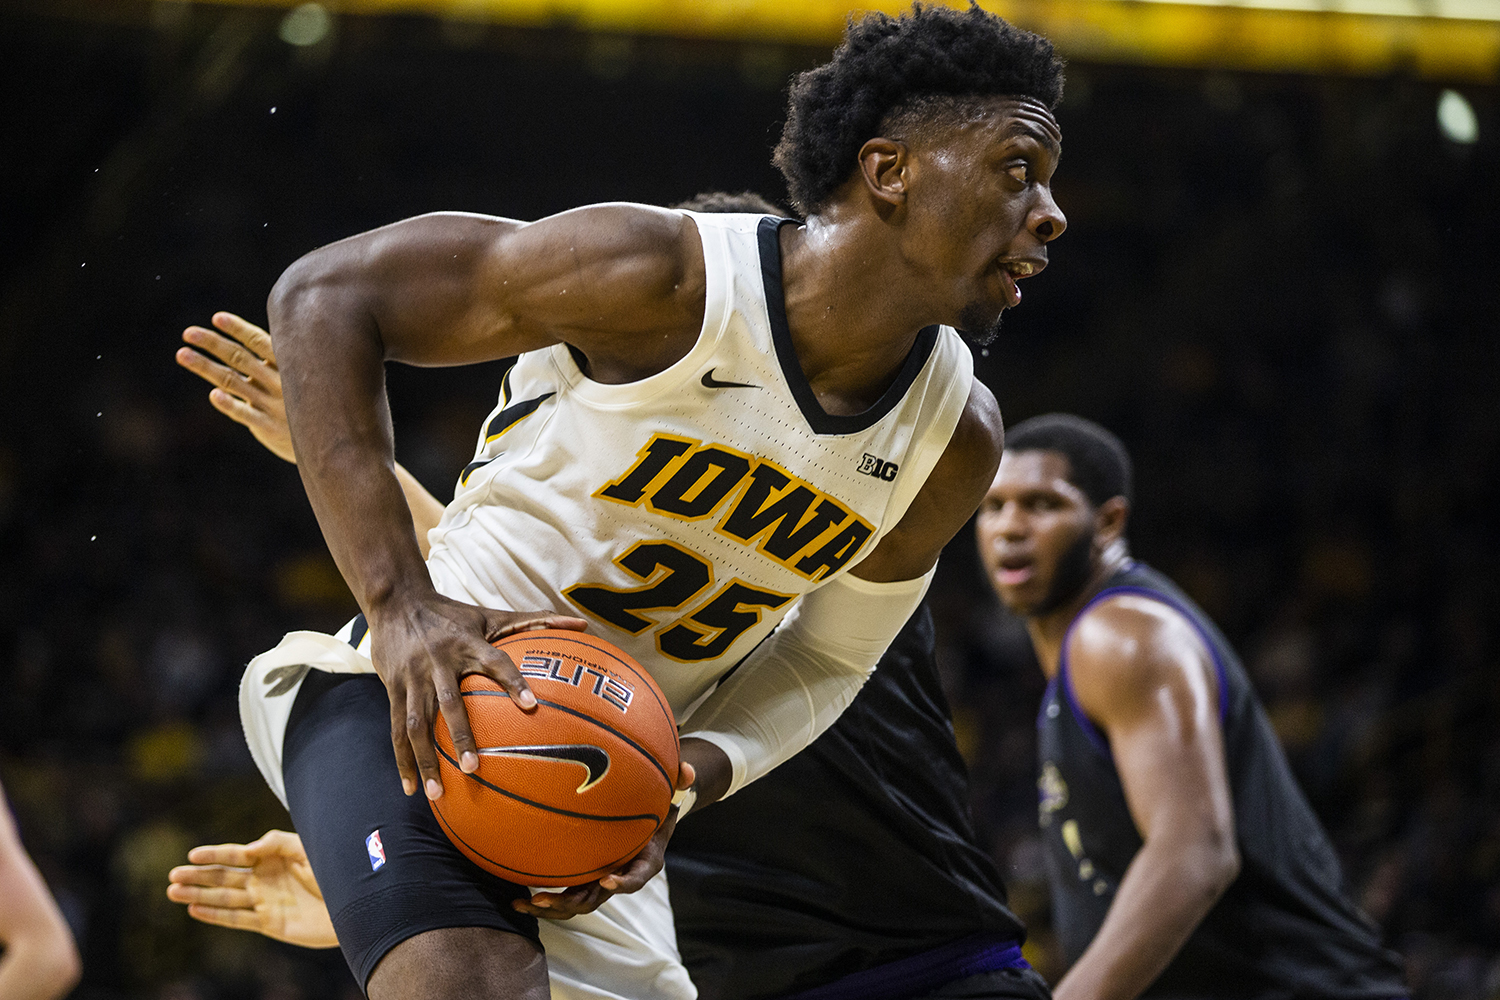 Iowa forward Tyler Cook (25) dribbles the ball during the men's basketball game against Western Carolina at Carver-Hawkeye Arena on Tuesday, December 18, 2018. The Hawkeyes defeated the Catamounts 78-60.